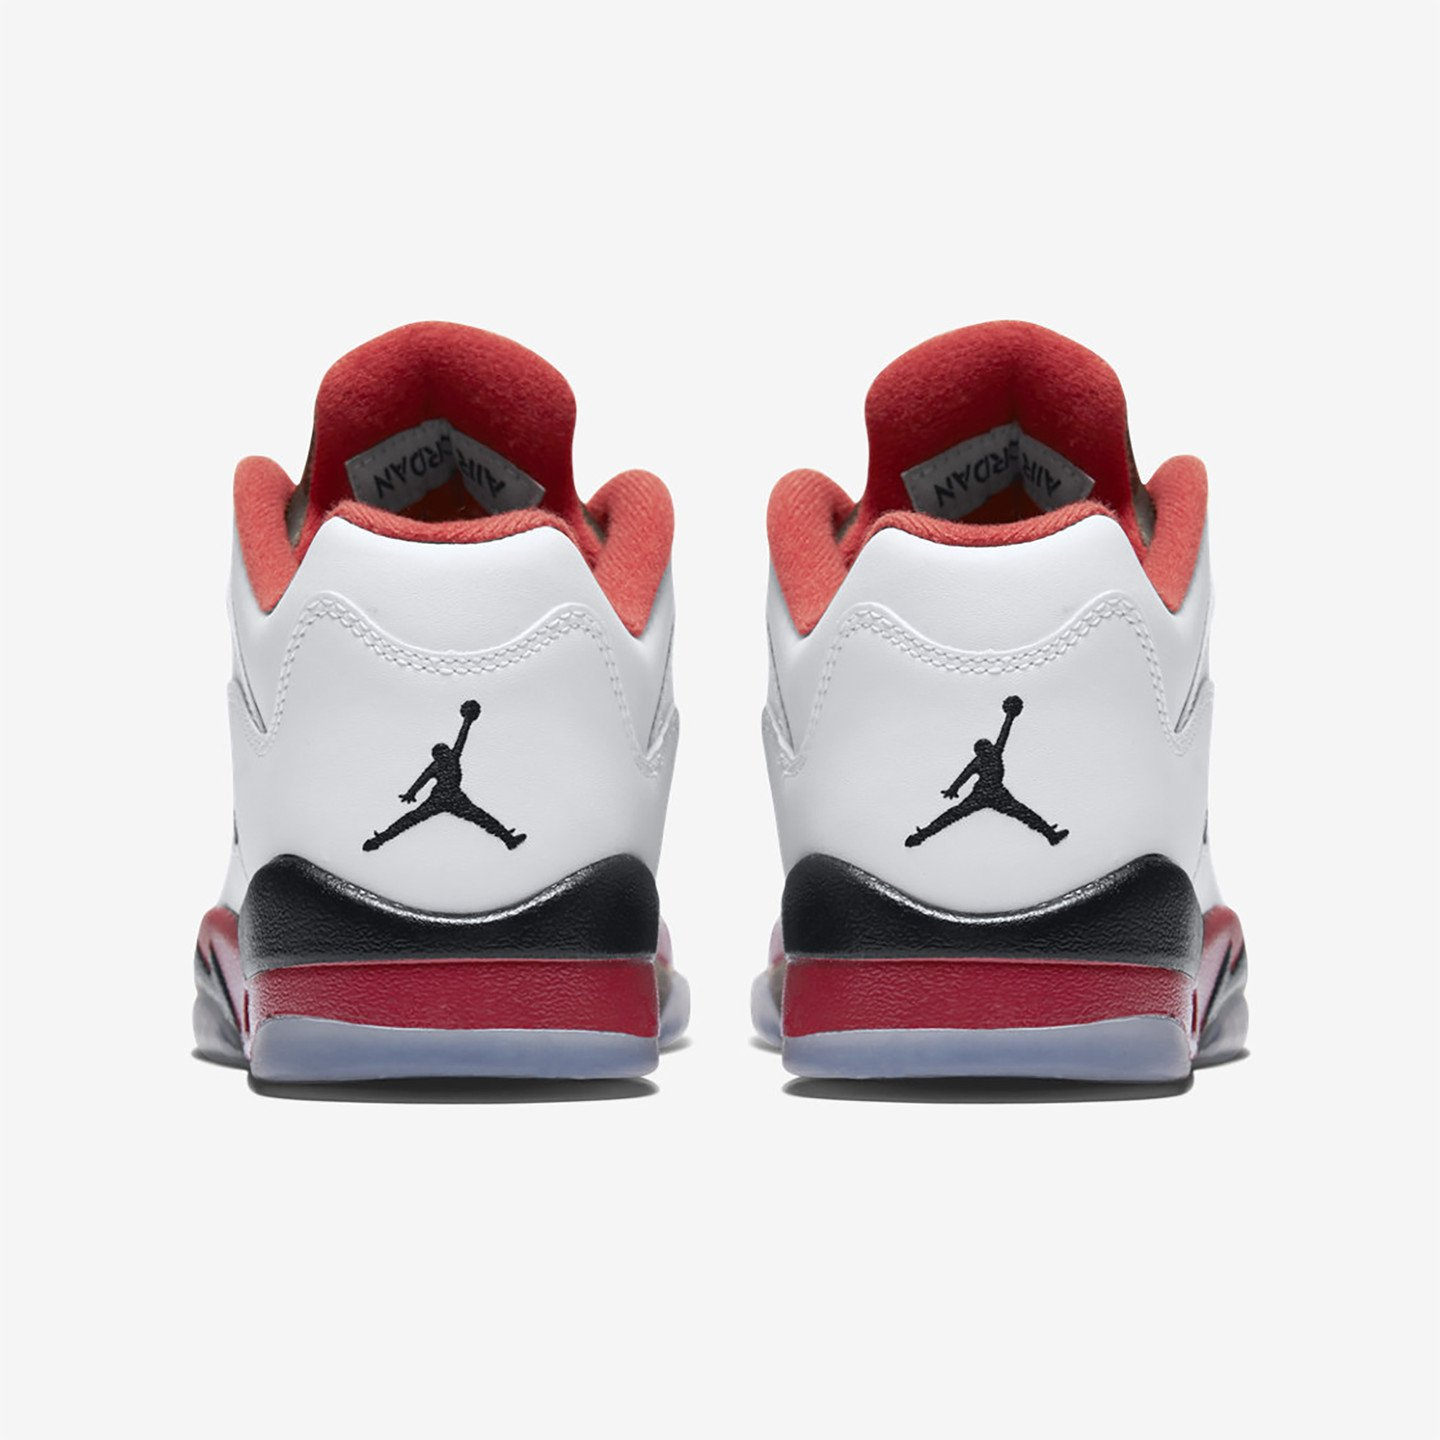 Jordan Air Jordan 5 Low Retro GS 'Fire Red' White / Fire Red / Black 314338-101-39